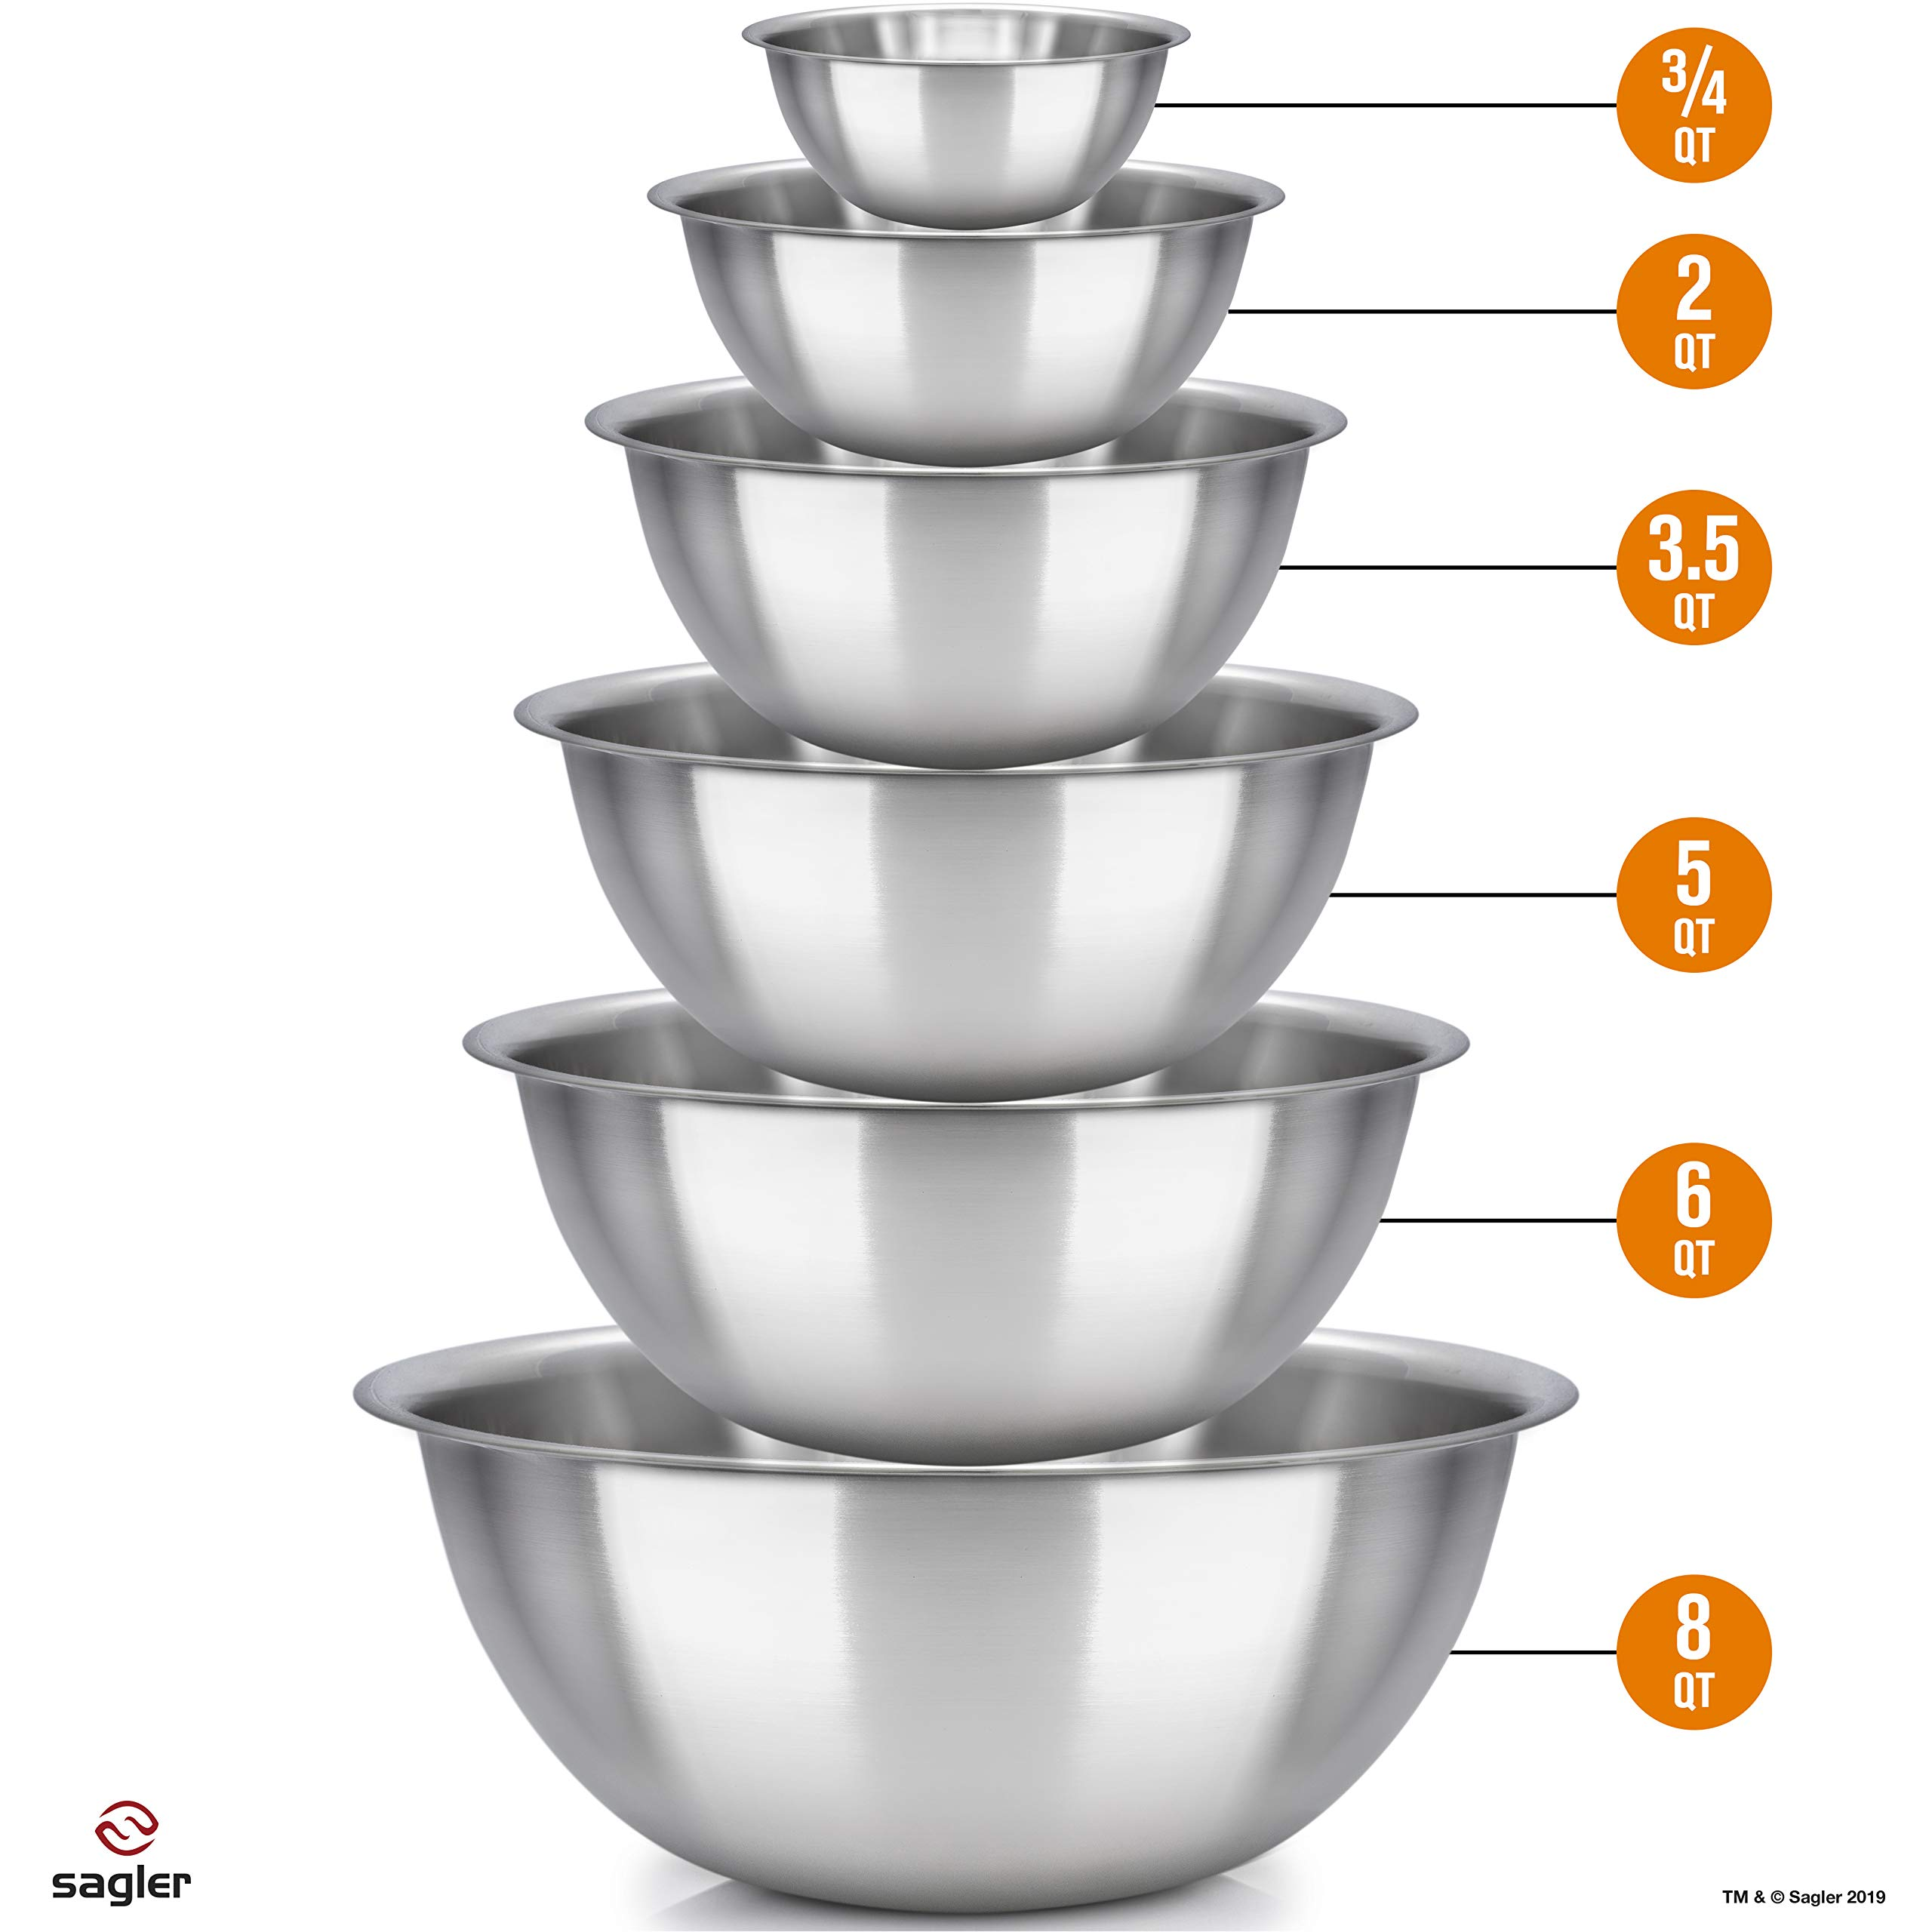 mixing bowls - mixing bowl Set of 6 - stainless steel mixing bowls - Polished Mirror kitchen bowls - Set Includes ¾, 2, 3.5, 5, 6, 8 Quart - Ideal For Cooking & Serving - Easy to clean - Great gift by Sagler